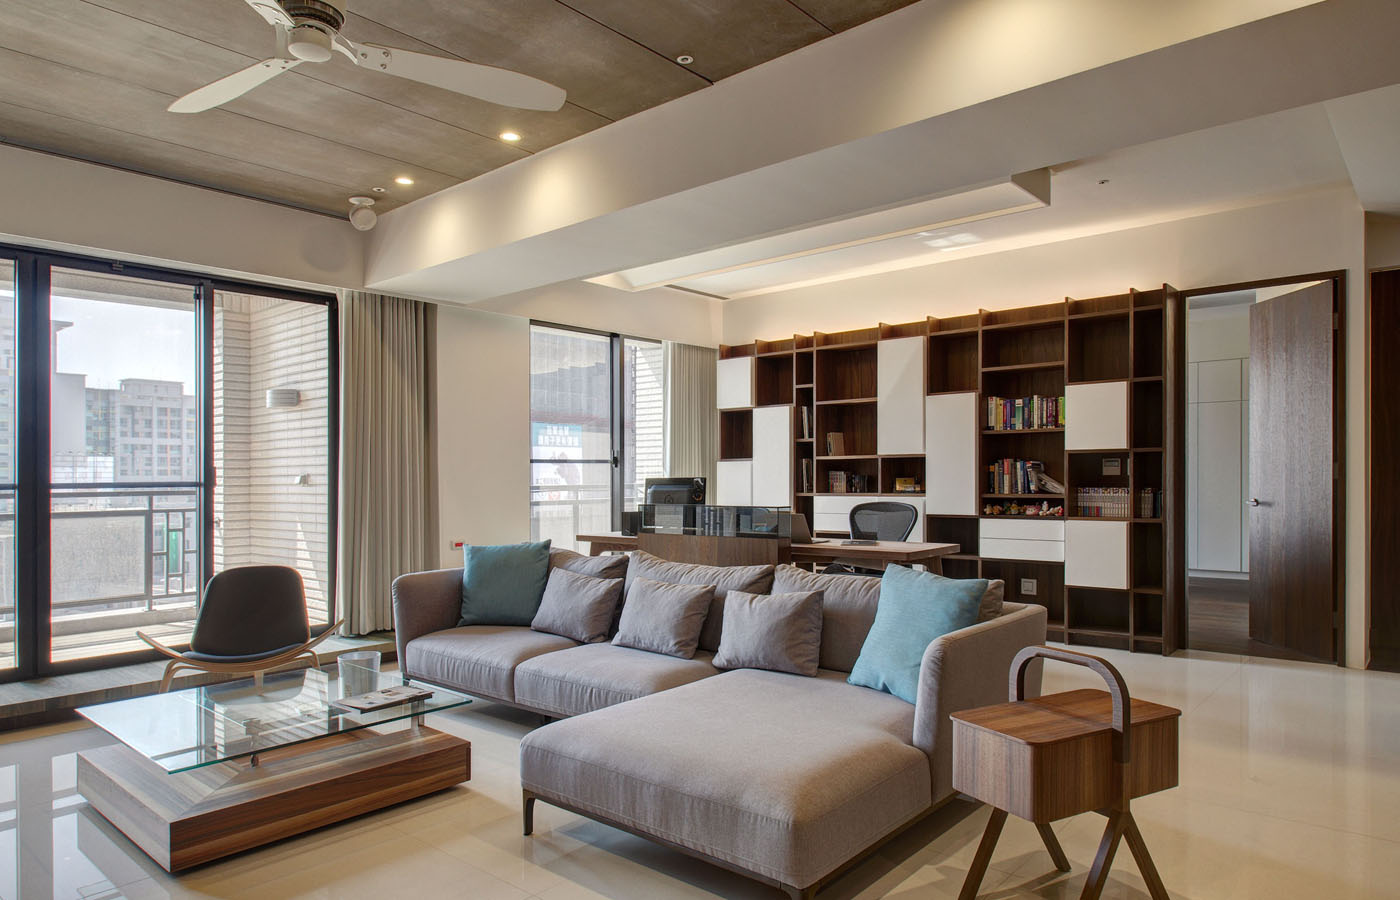 Modern apartment designs by phase6 design studio for Apartment design models